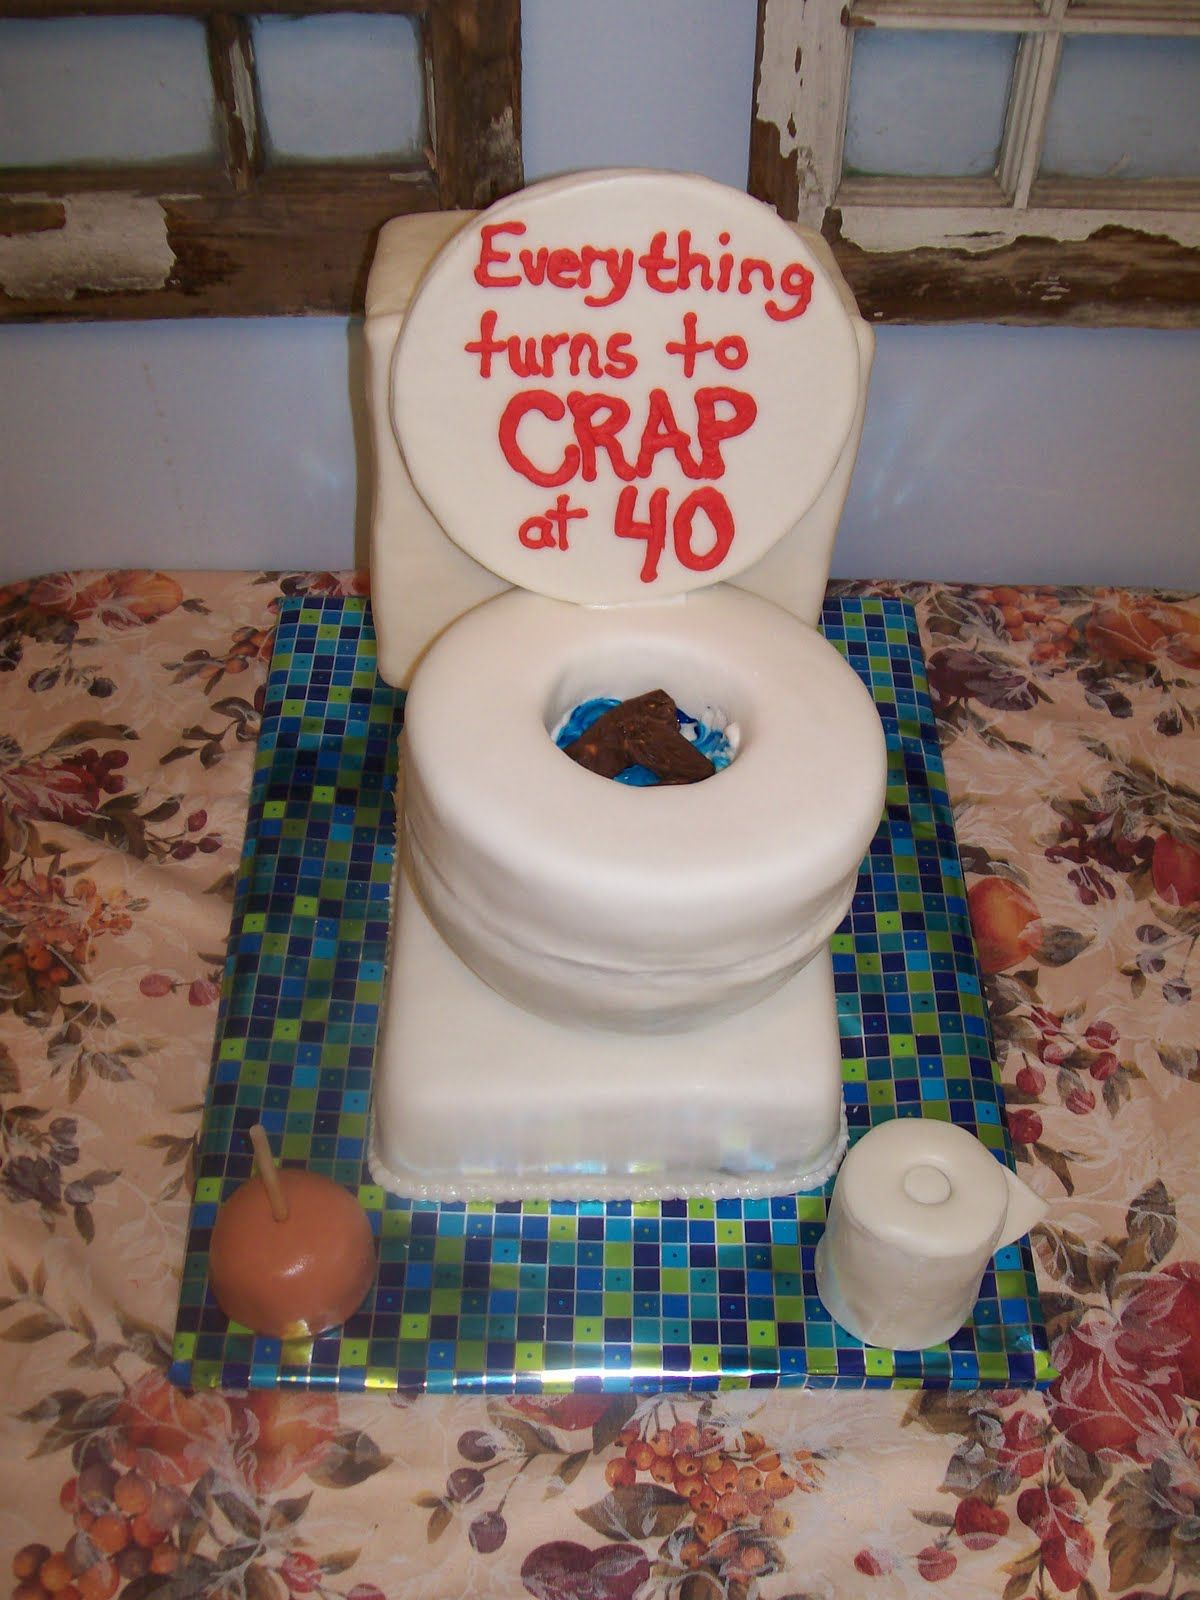 Let Them Eat Cake Toilet Cake Birthday Cakes For Men Over The Hill Cakes Toilet Cake